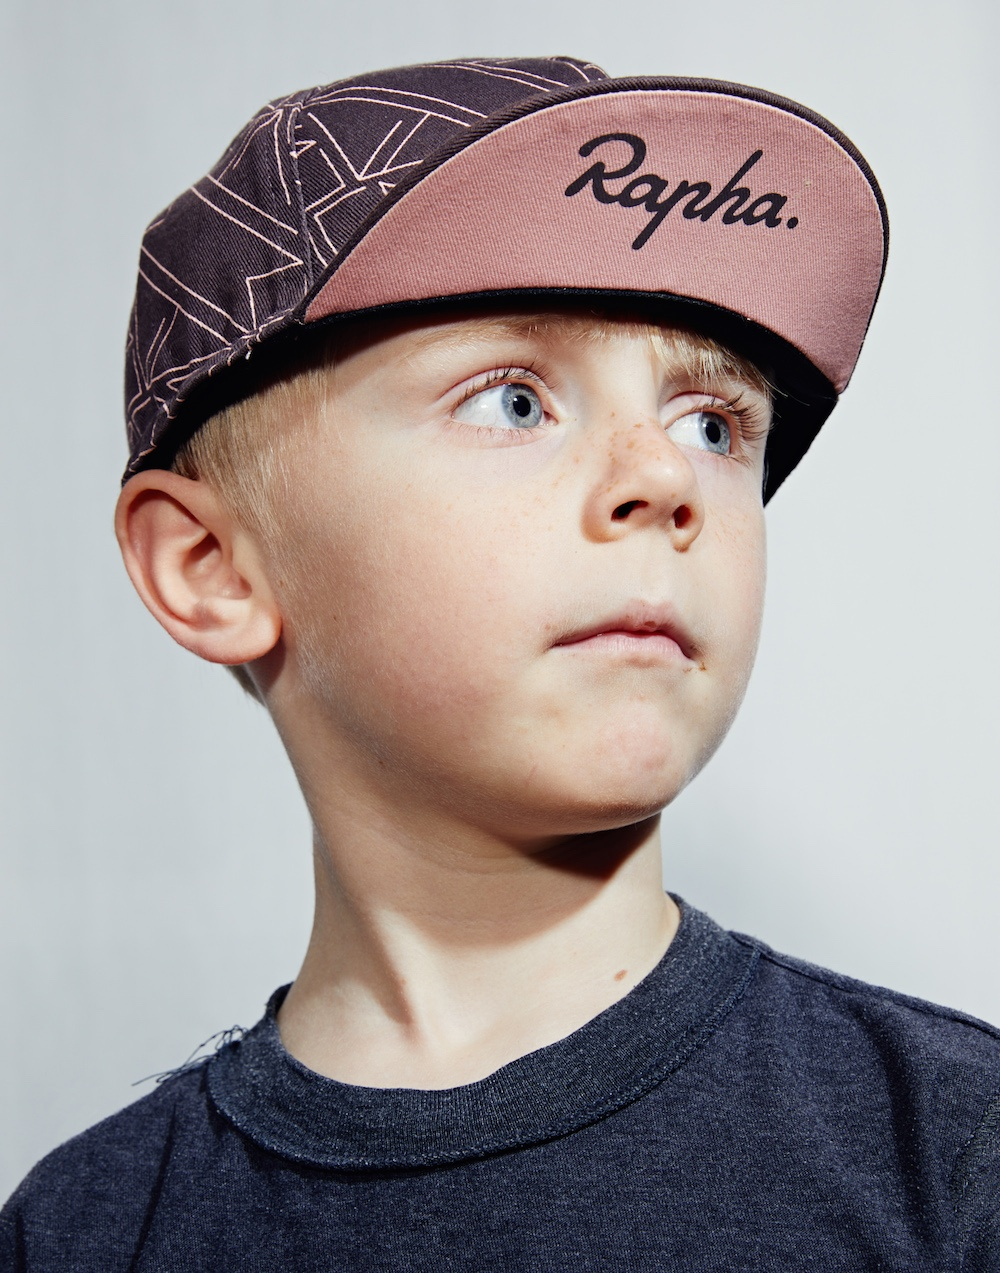 Boy-wearing-pink-black-cap.jpg